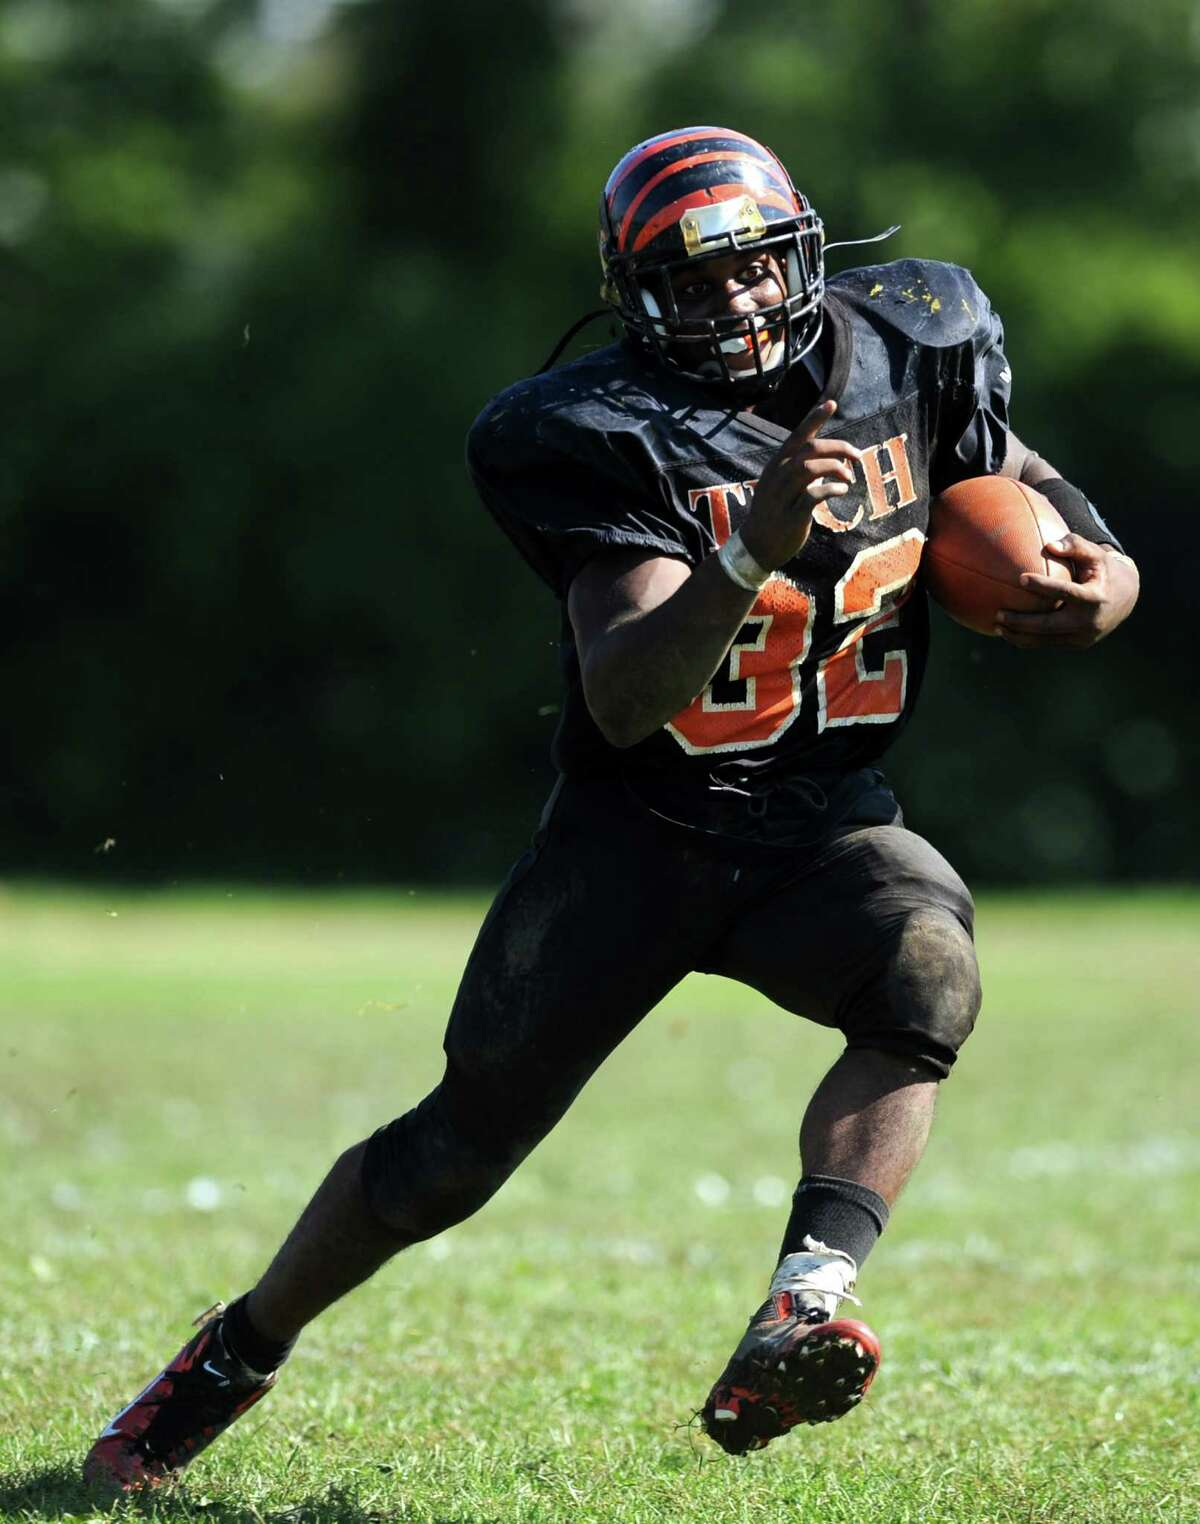 Bullard-Havens Technical School's John Shannon carries the ball on his way to a touchdown during their game against Prince Tech, of Hartford, Saturday, Oct. 8, 2011 at Bullard-Havens' campus in Bridgeport, Conn.